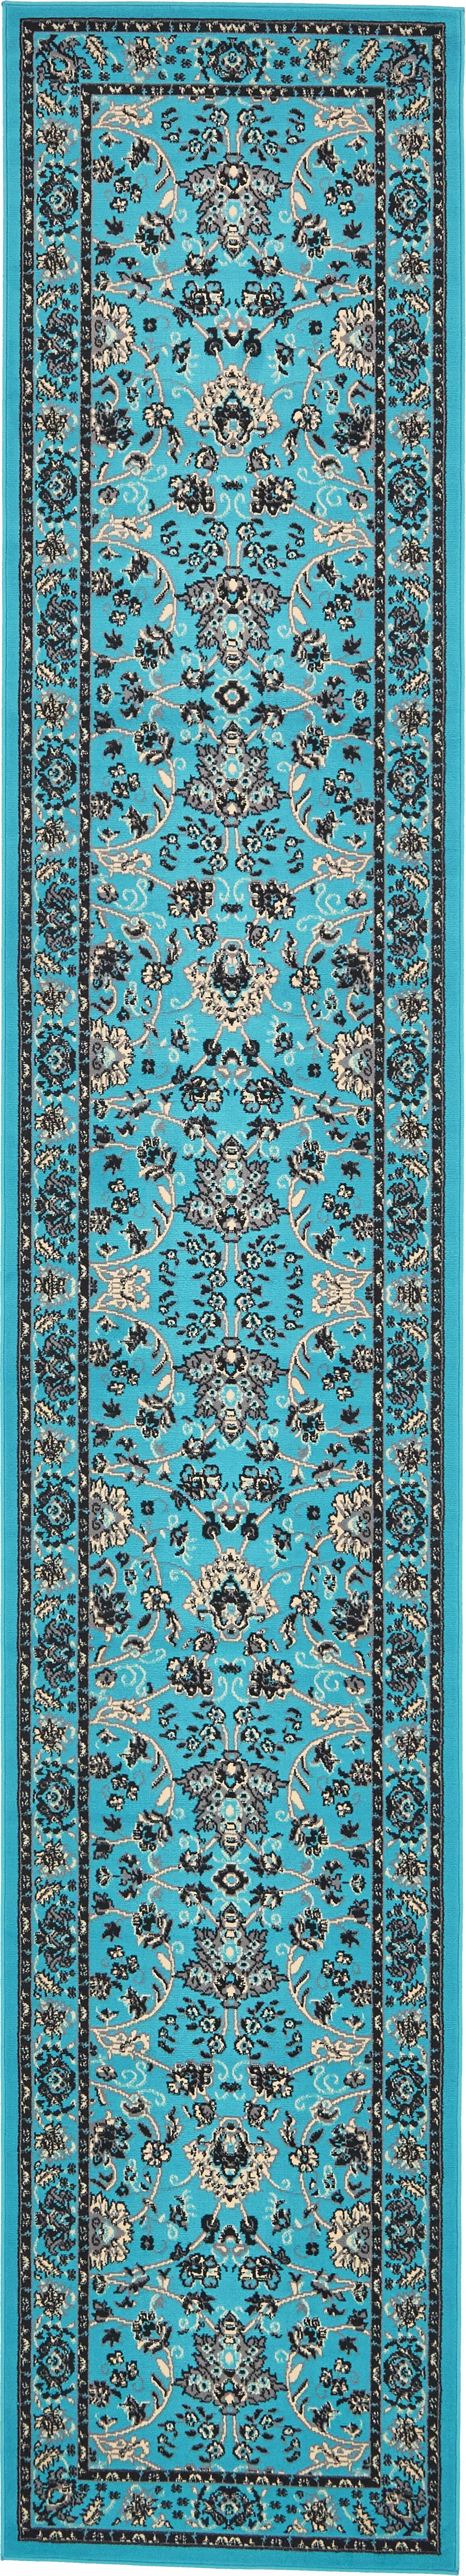 Southern Turquoise Area Rug Rug Size: Runner 3' x 16'5